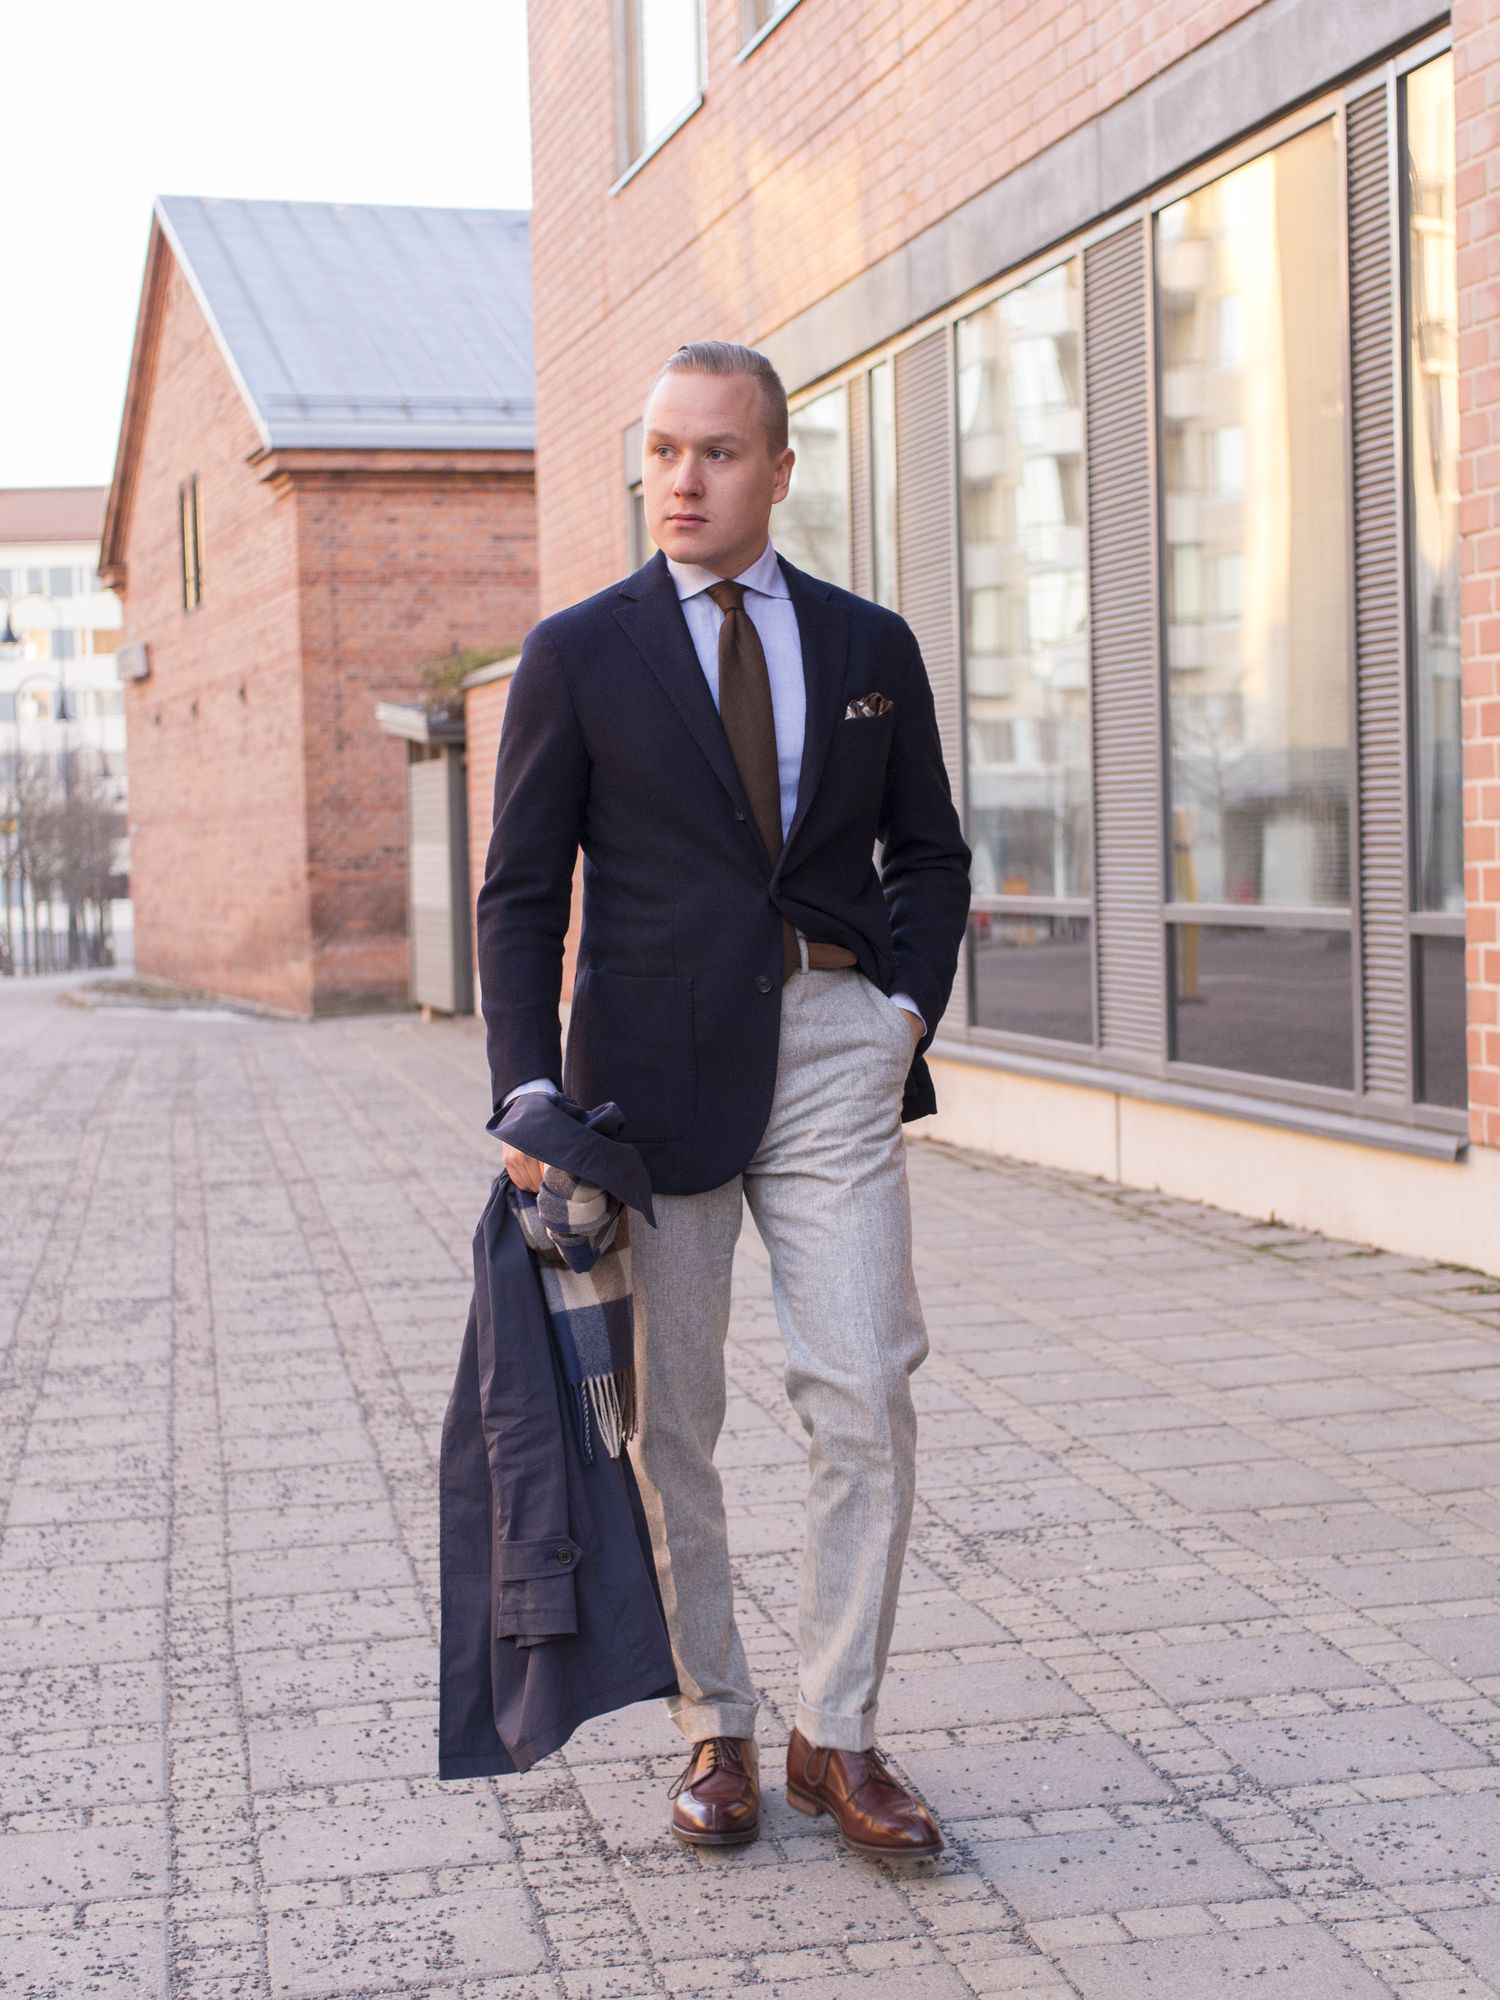 Dress up formally - The Unstructured Wool Flannel Jacket Is From Luigi Bianchi Mantova Shirt From Suitsupply Seven Fold Brown Cashmere Herringbone Tie From Brioni